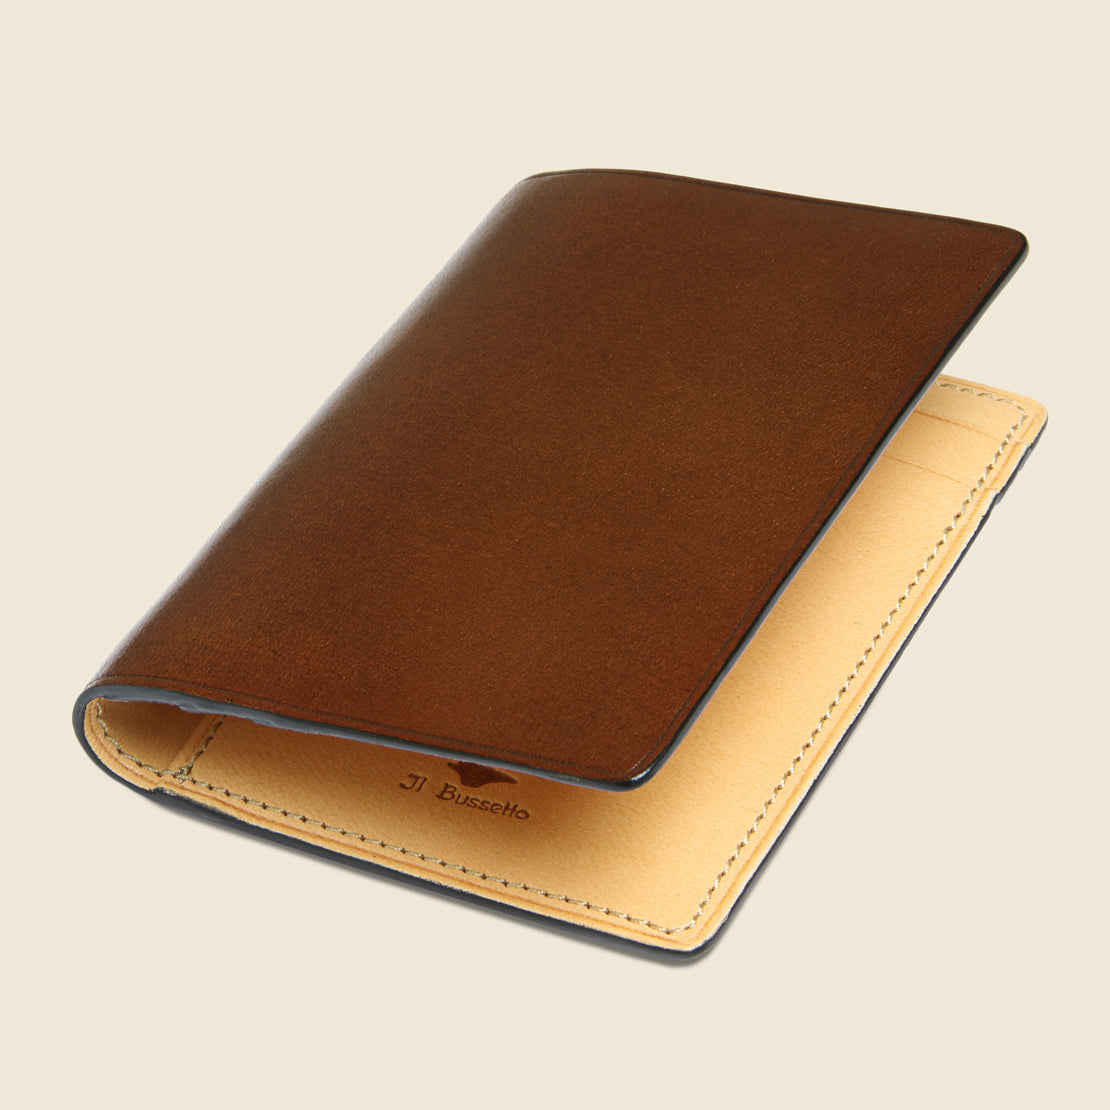 Bi-Fold Card Case - Brown - Il Bussetto - STAG Provisions - Accessories - Wallets